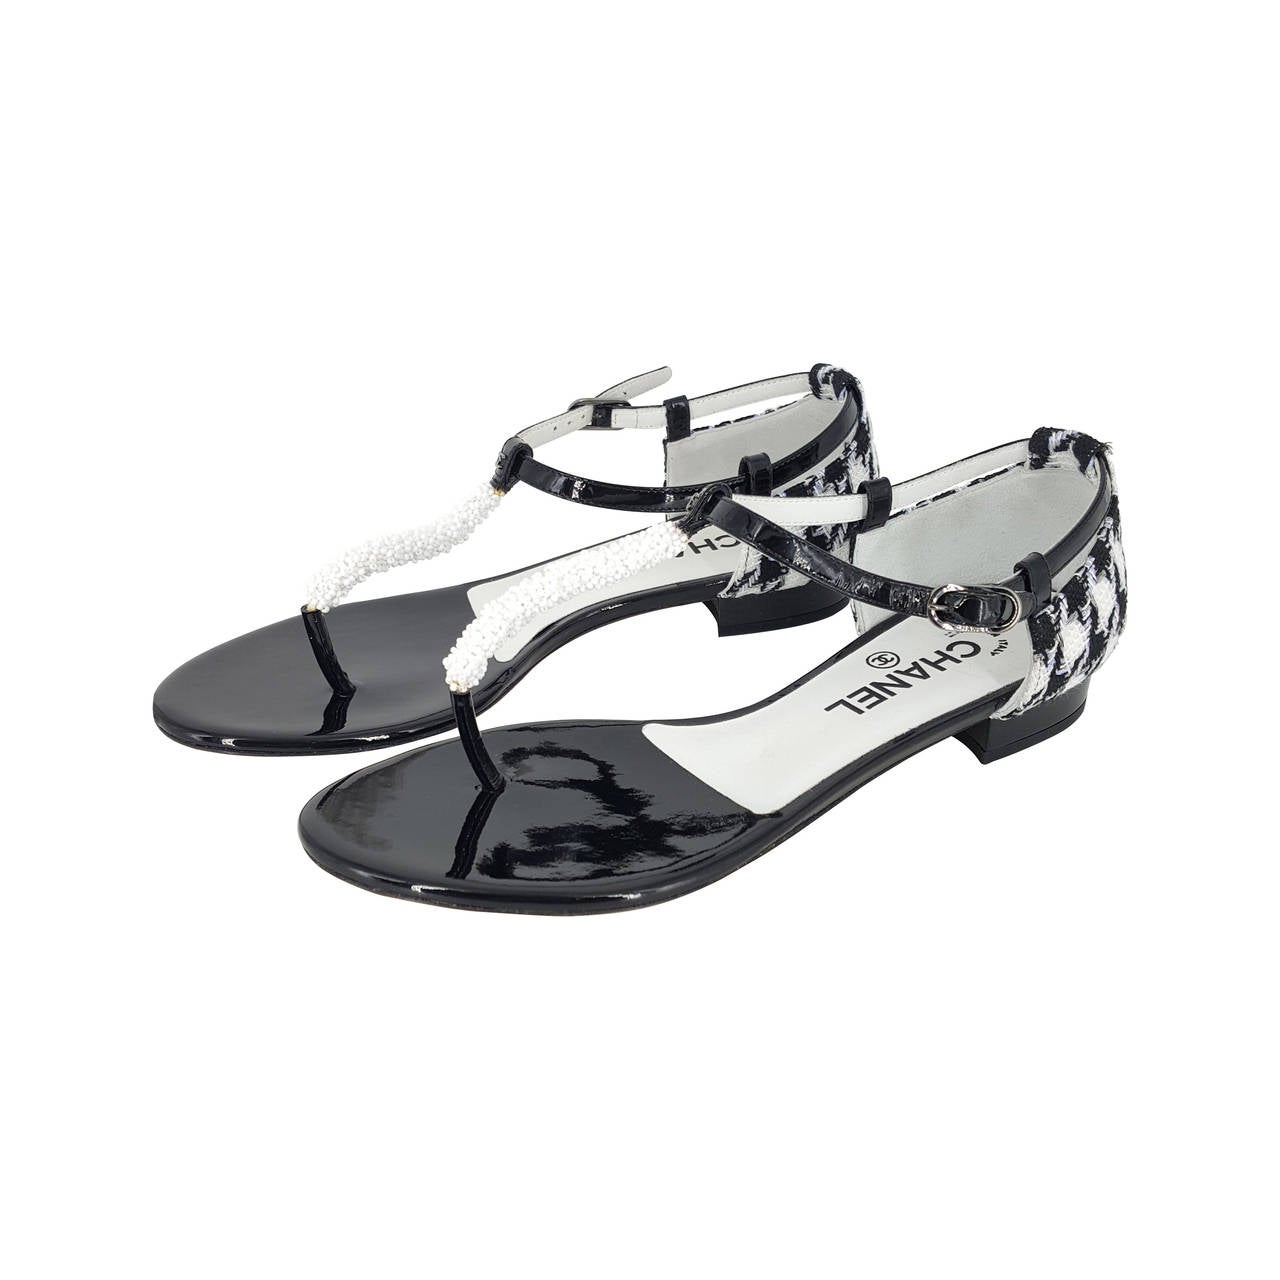 New Acura Dealership In Delray Beach Fl 33483: CHANEL Black And White Patent Leather And Boucle Sandals